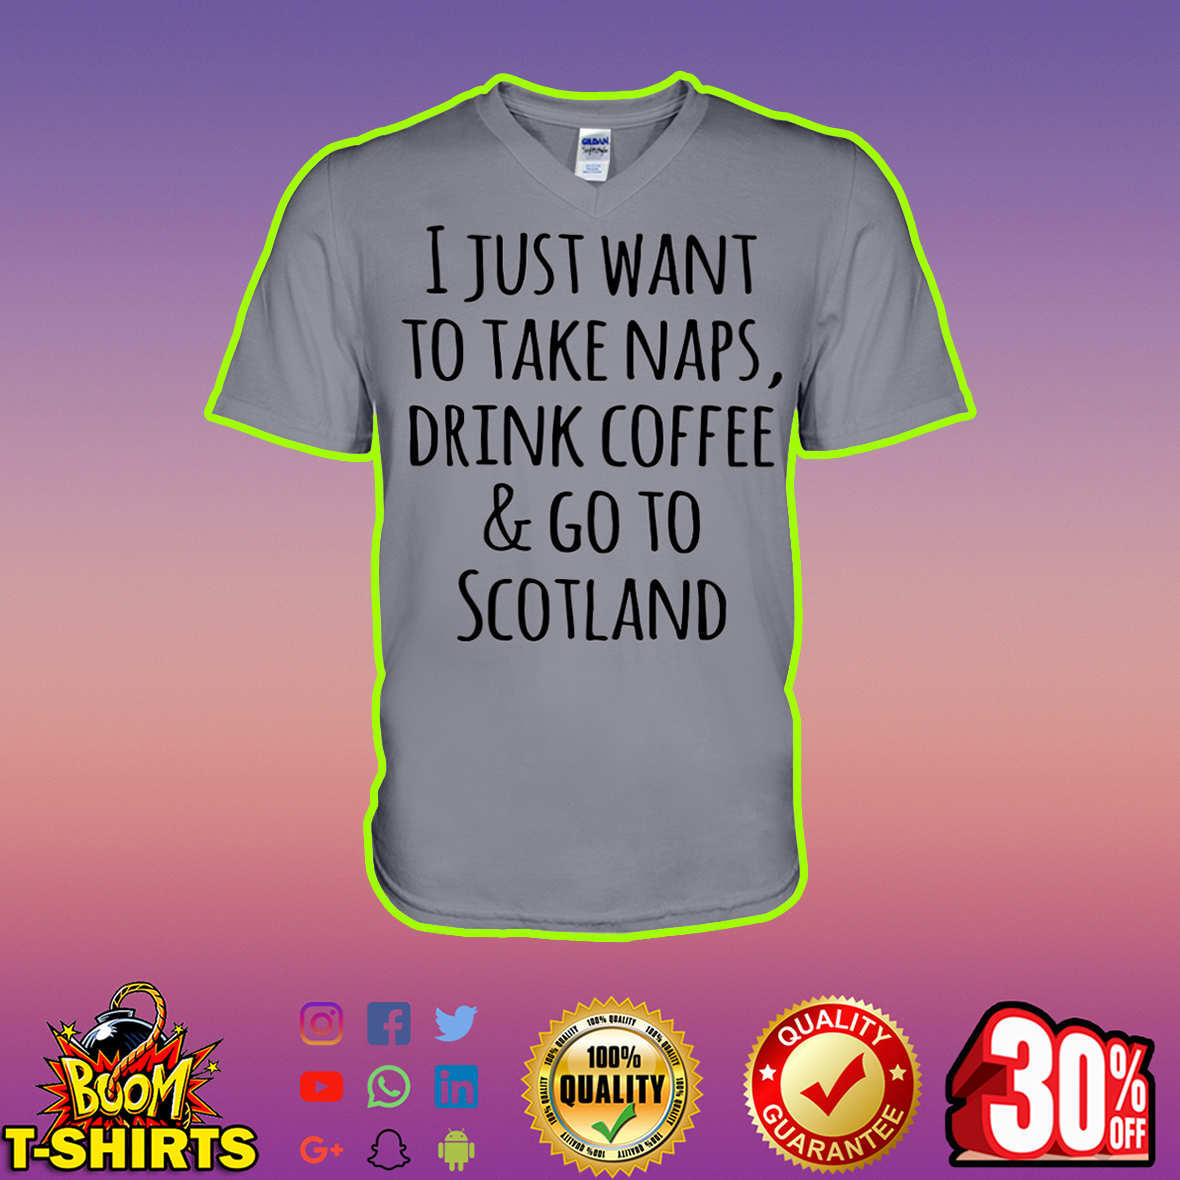 I just want to take naps drink coffee and go to Scotland v-neck